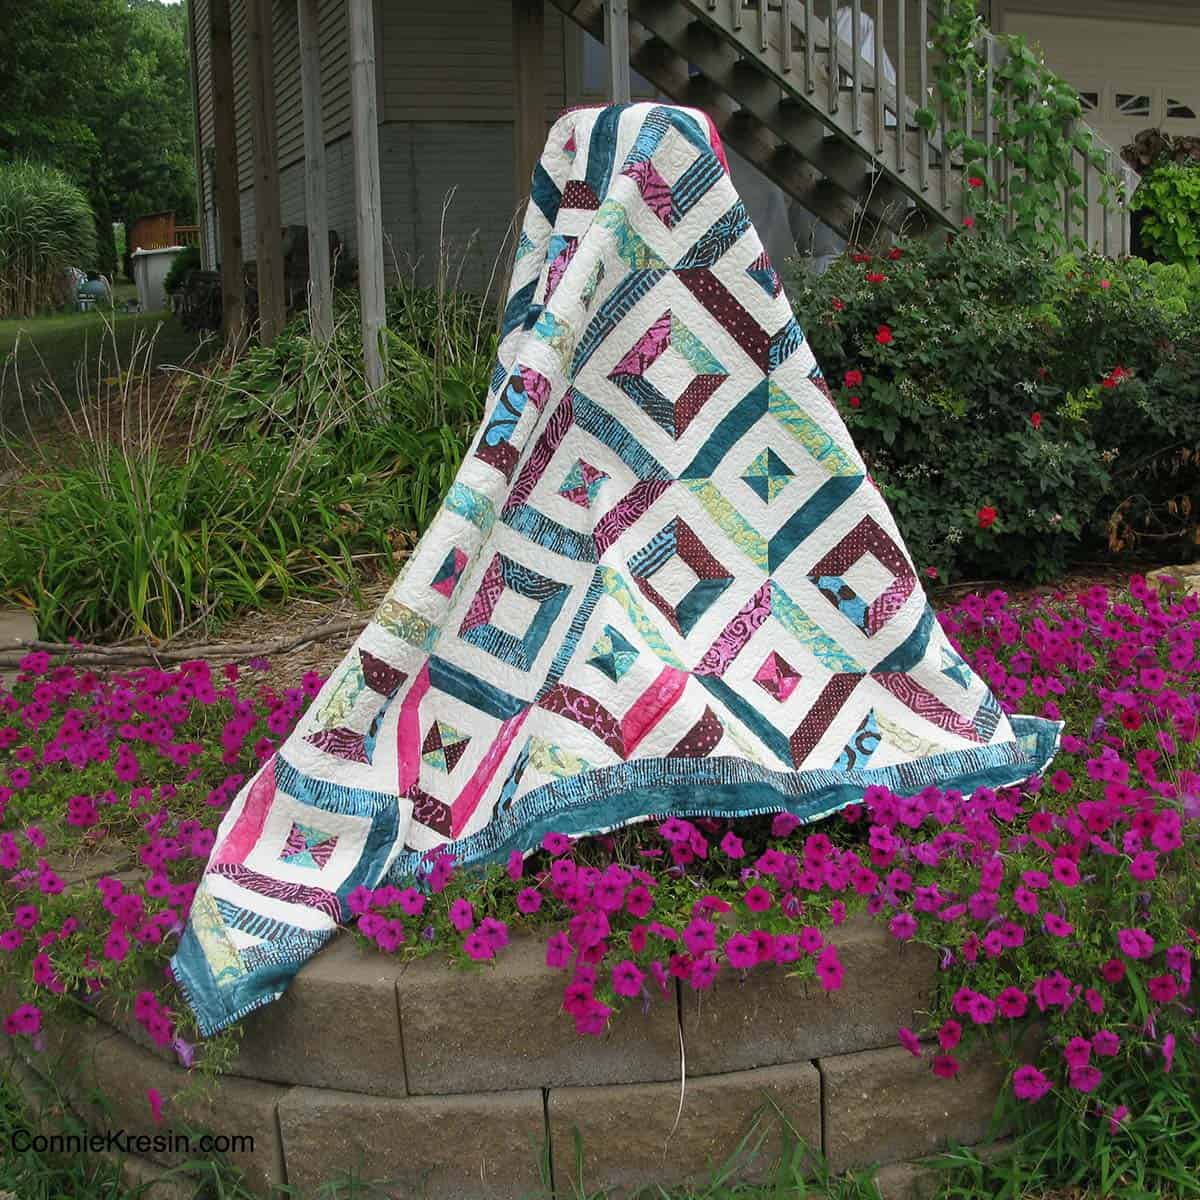 Petunia Strings quilt with flowers